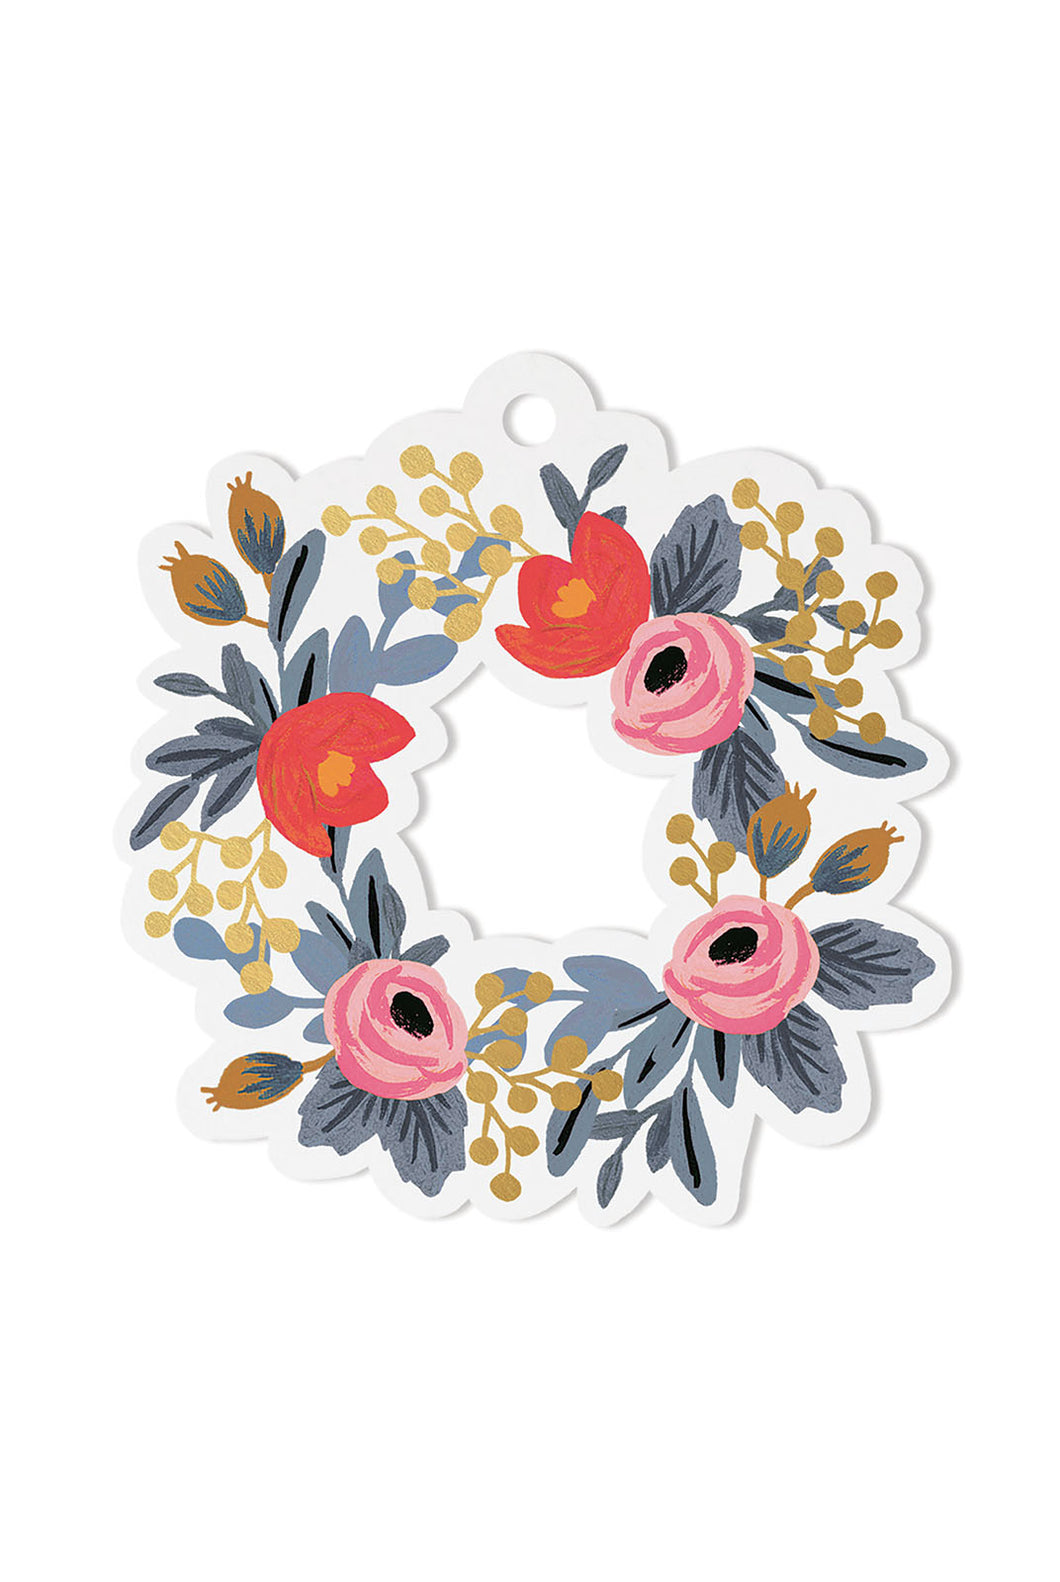 Rifle Paper Co - Die-Cut Gift Tags - Pack of 8 - Rosa